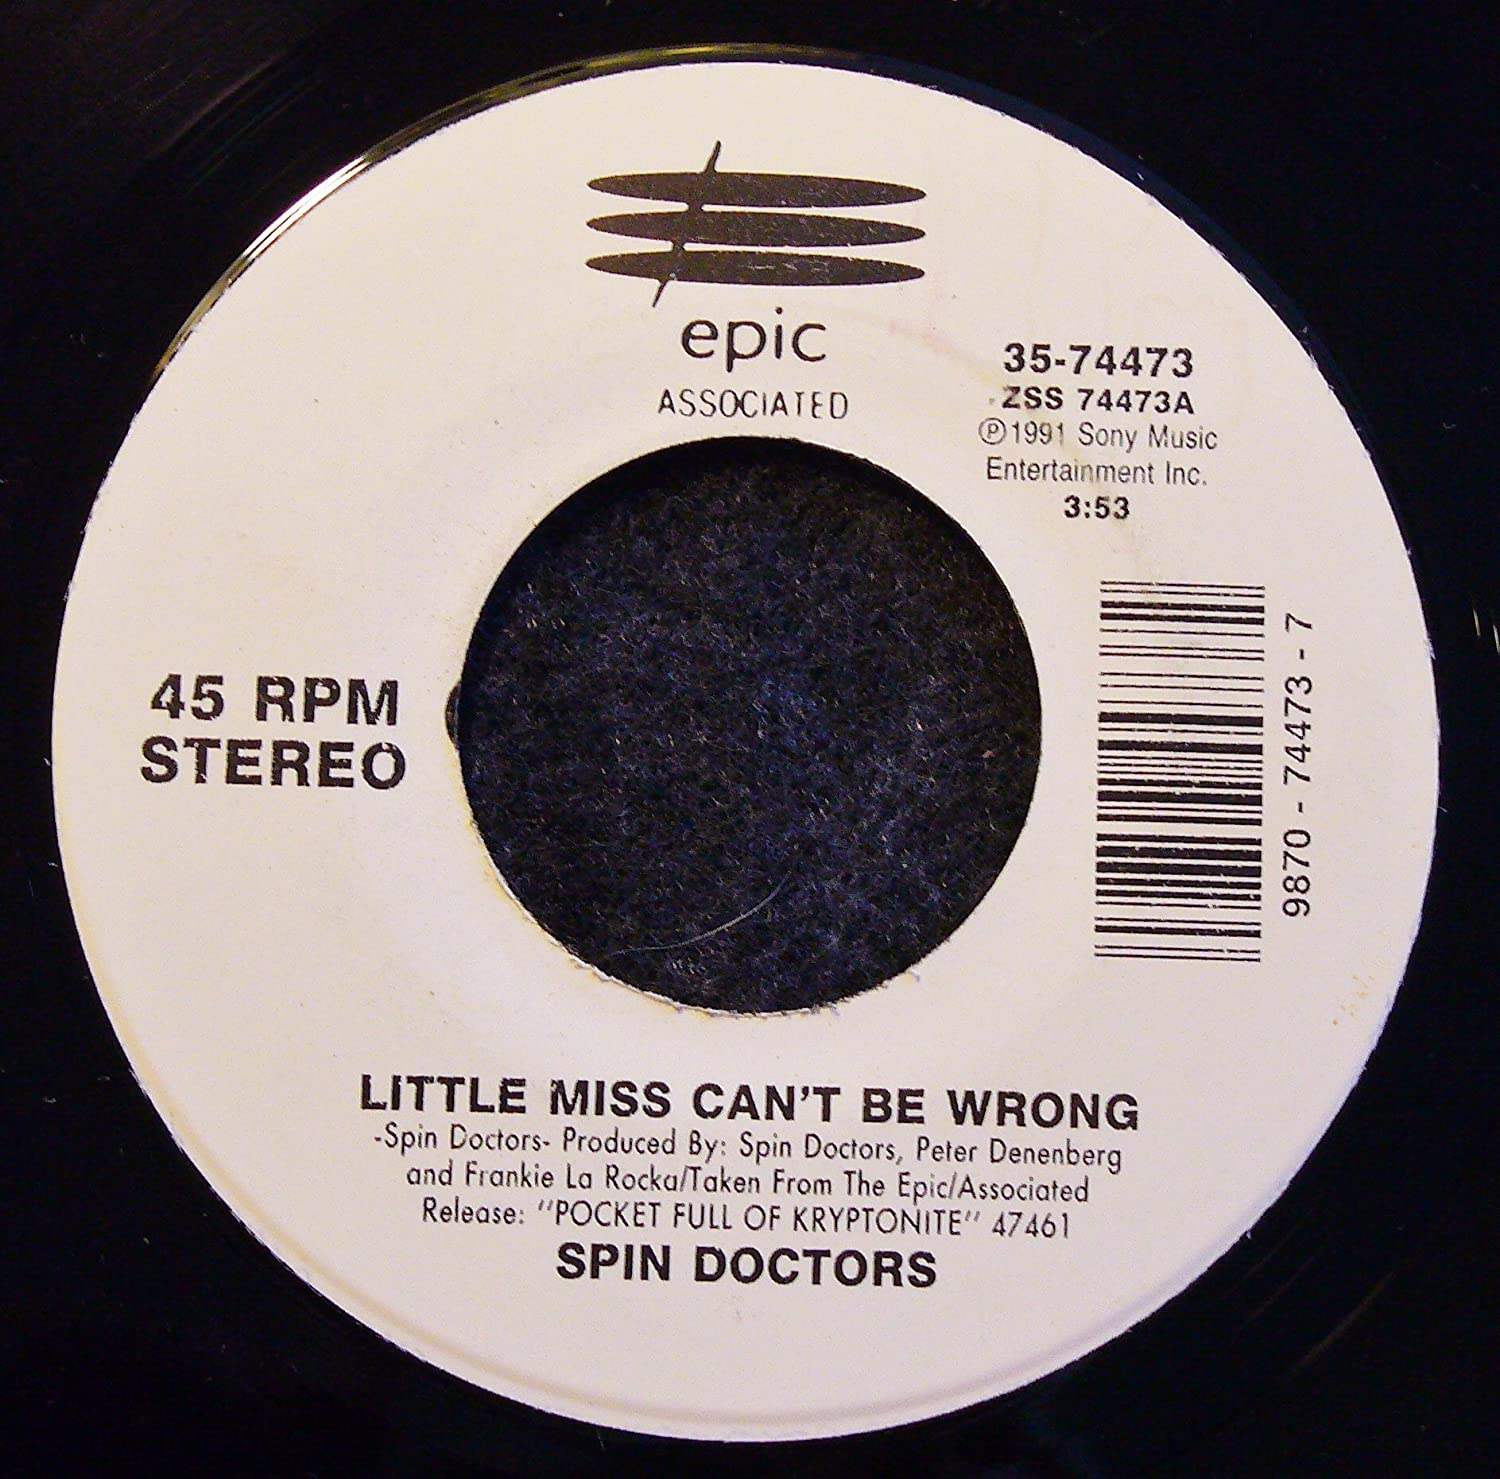 Spin Doctors Little Miss Can T Be Wrong Two Princes Amazon Com Music The music video begins with the band performing in front of a colorful abstract painting. be wrong two princes amazon